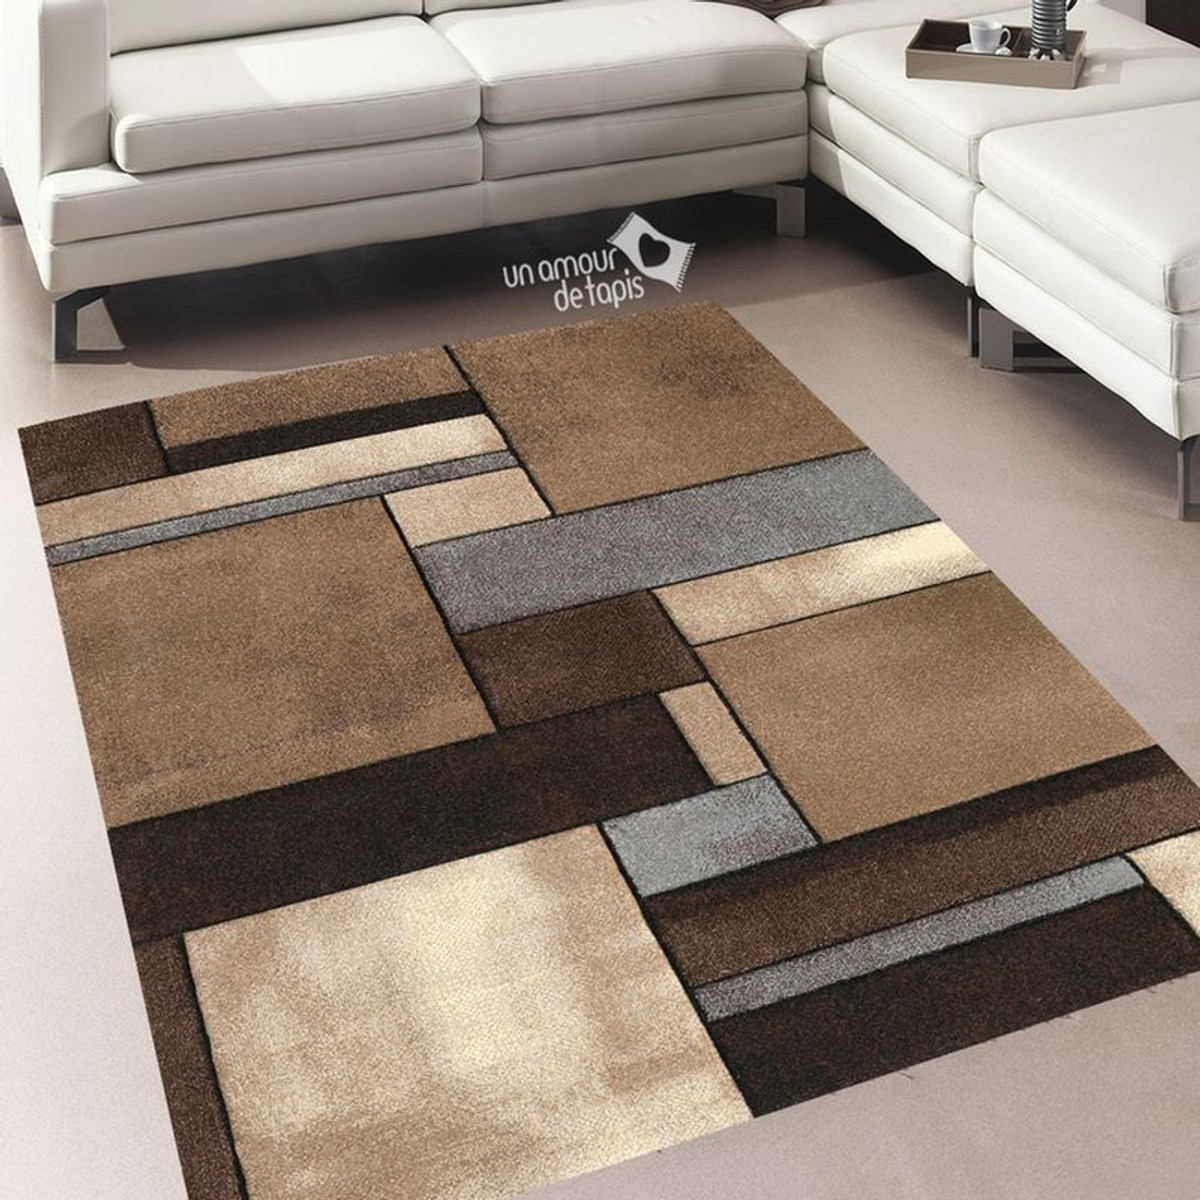 Tapis Salon Moderne Et Design Brillance 661 En 2020 Tapis Geometrique Salon Moderne Tapis Salon